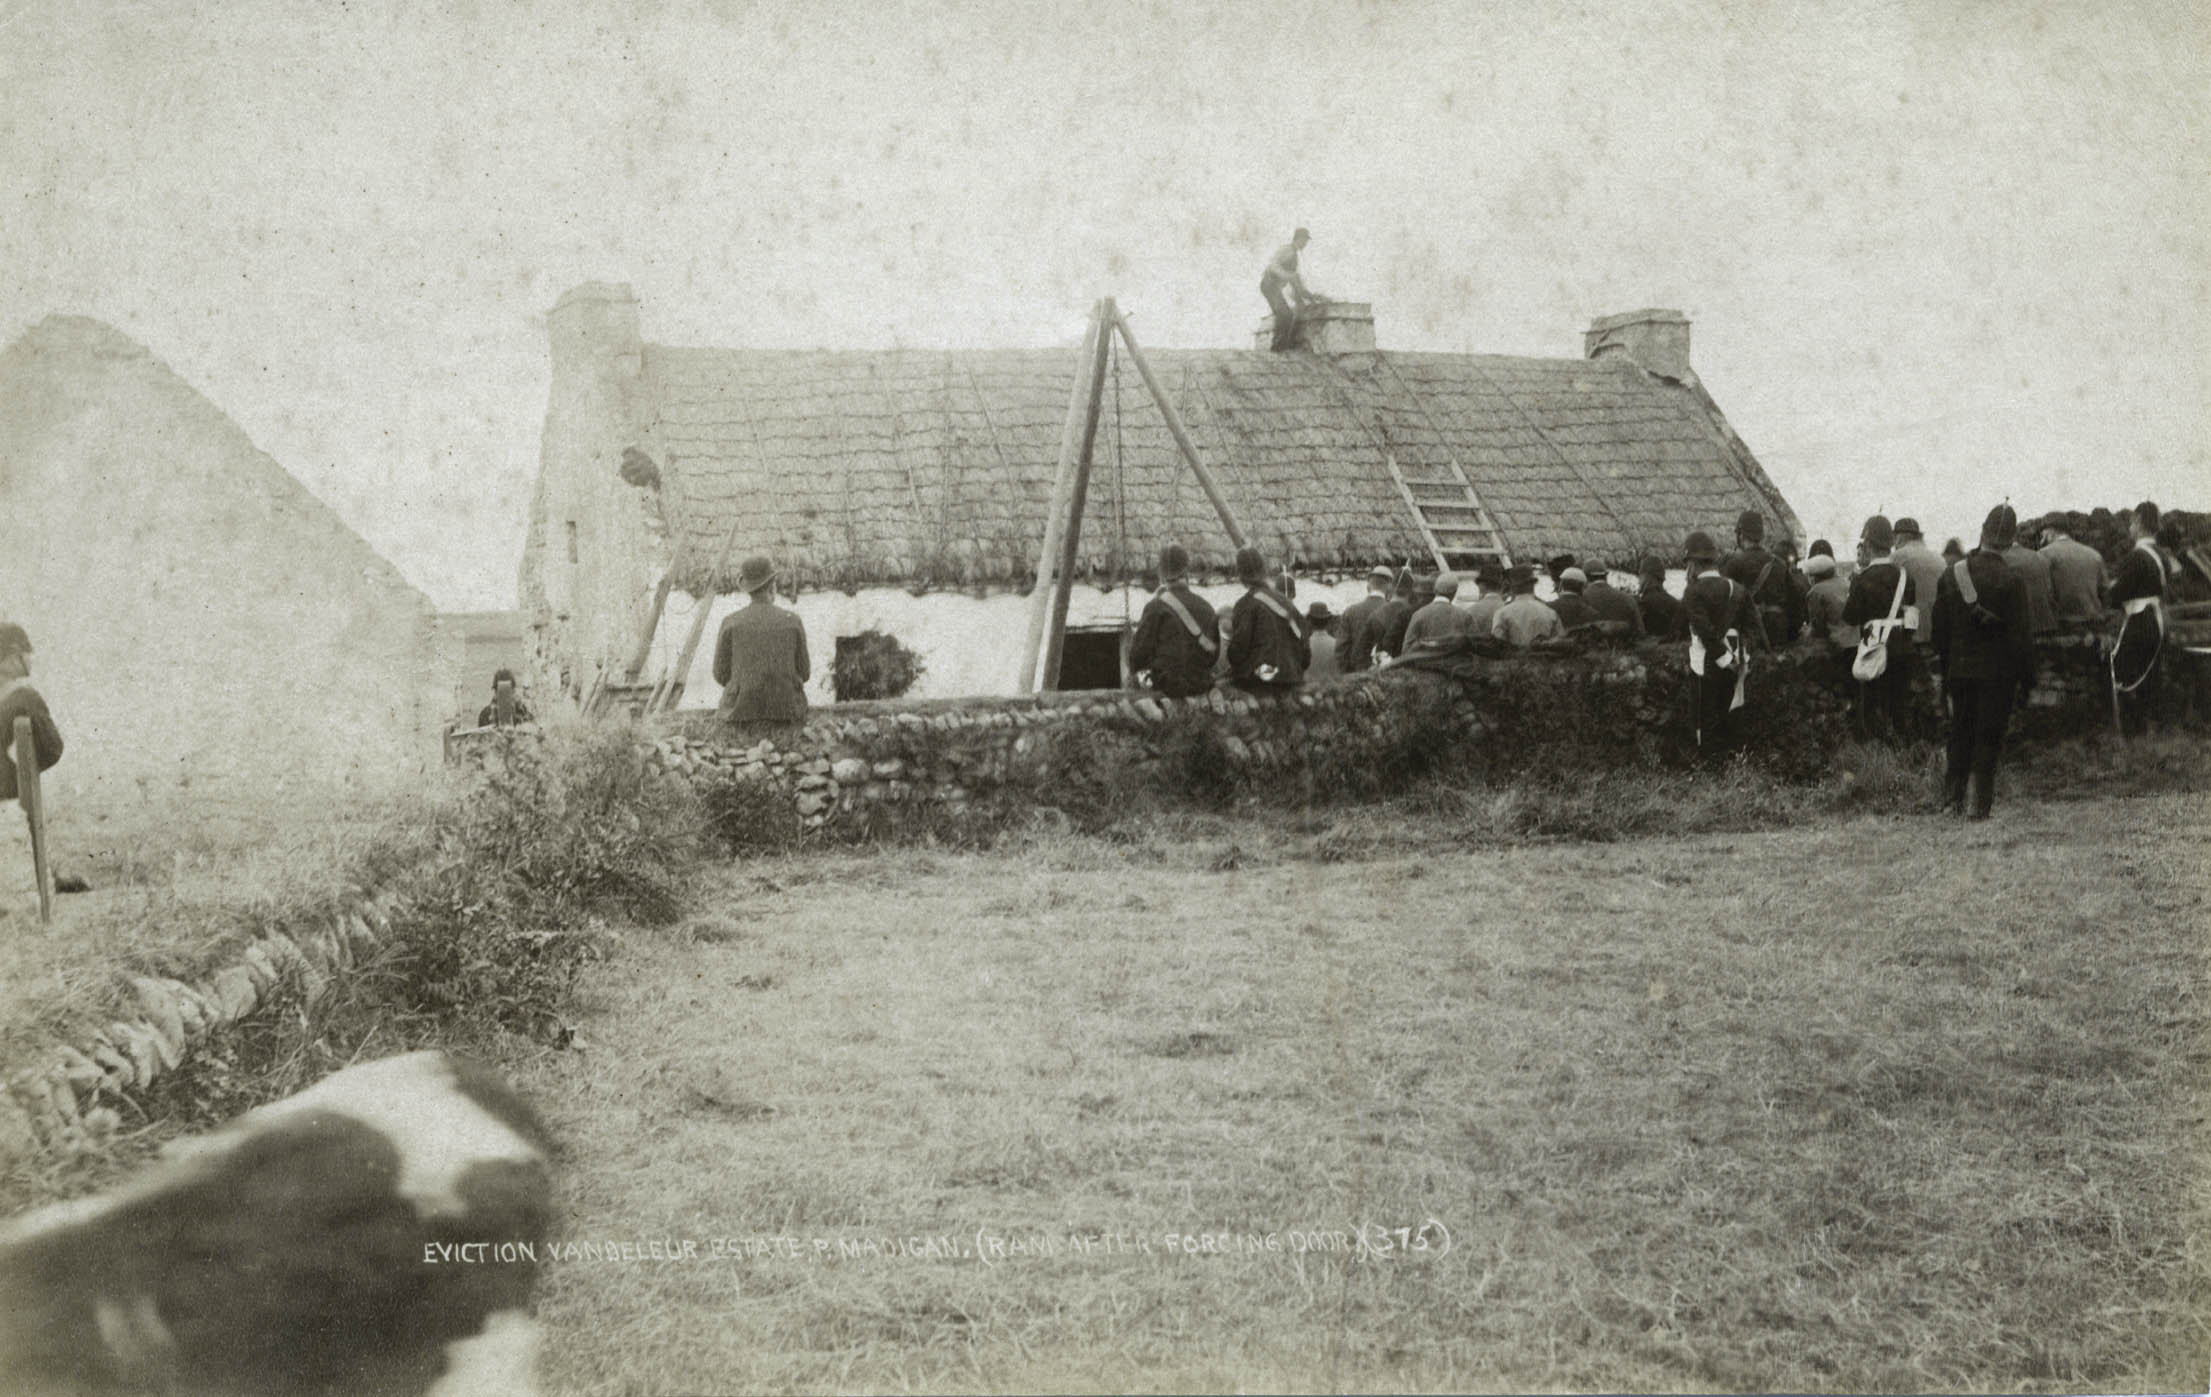 Uniformed British police perform an eviction on the Vandeleur Estate, c. 1888.